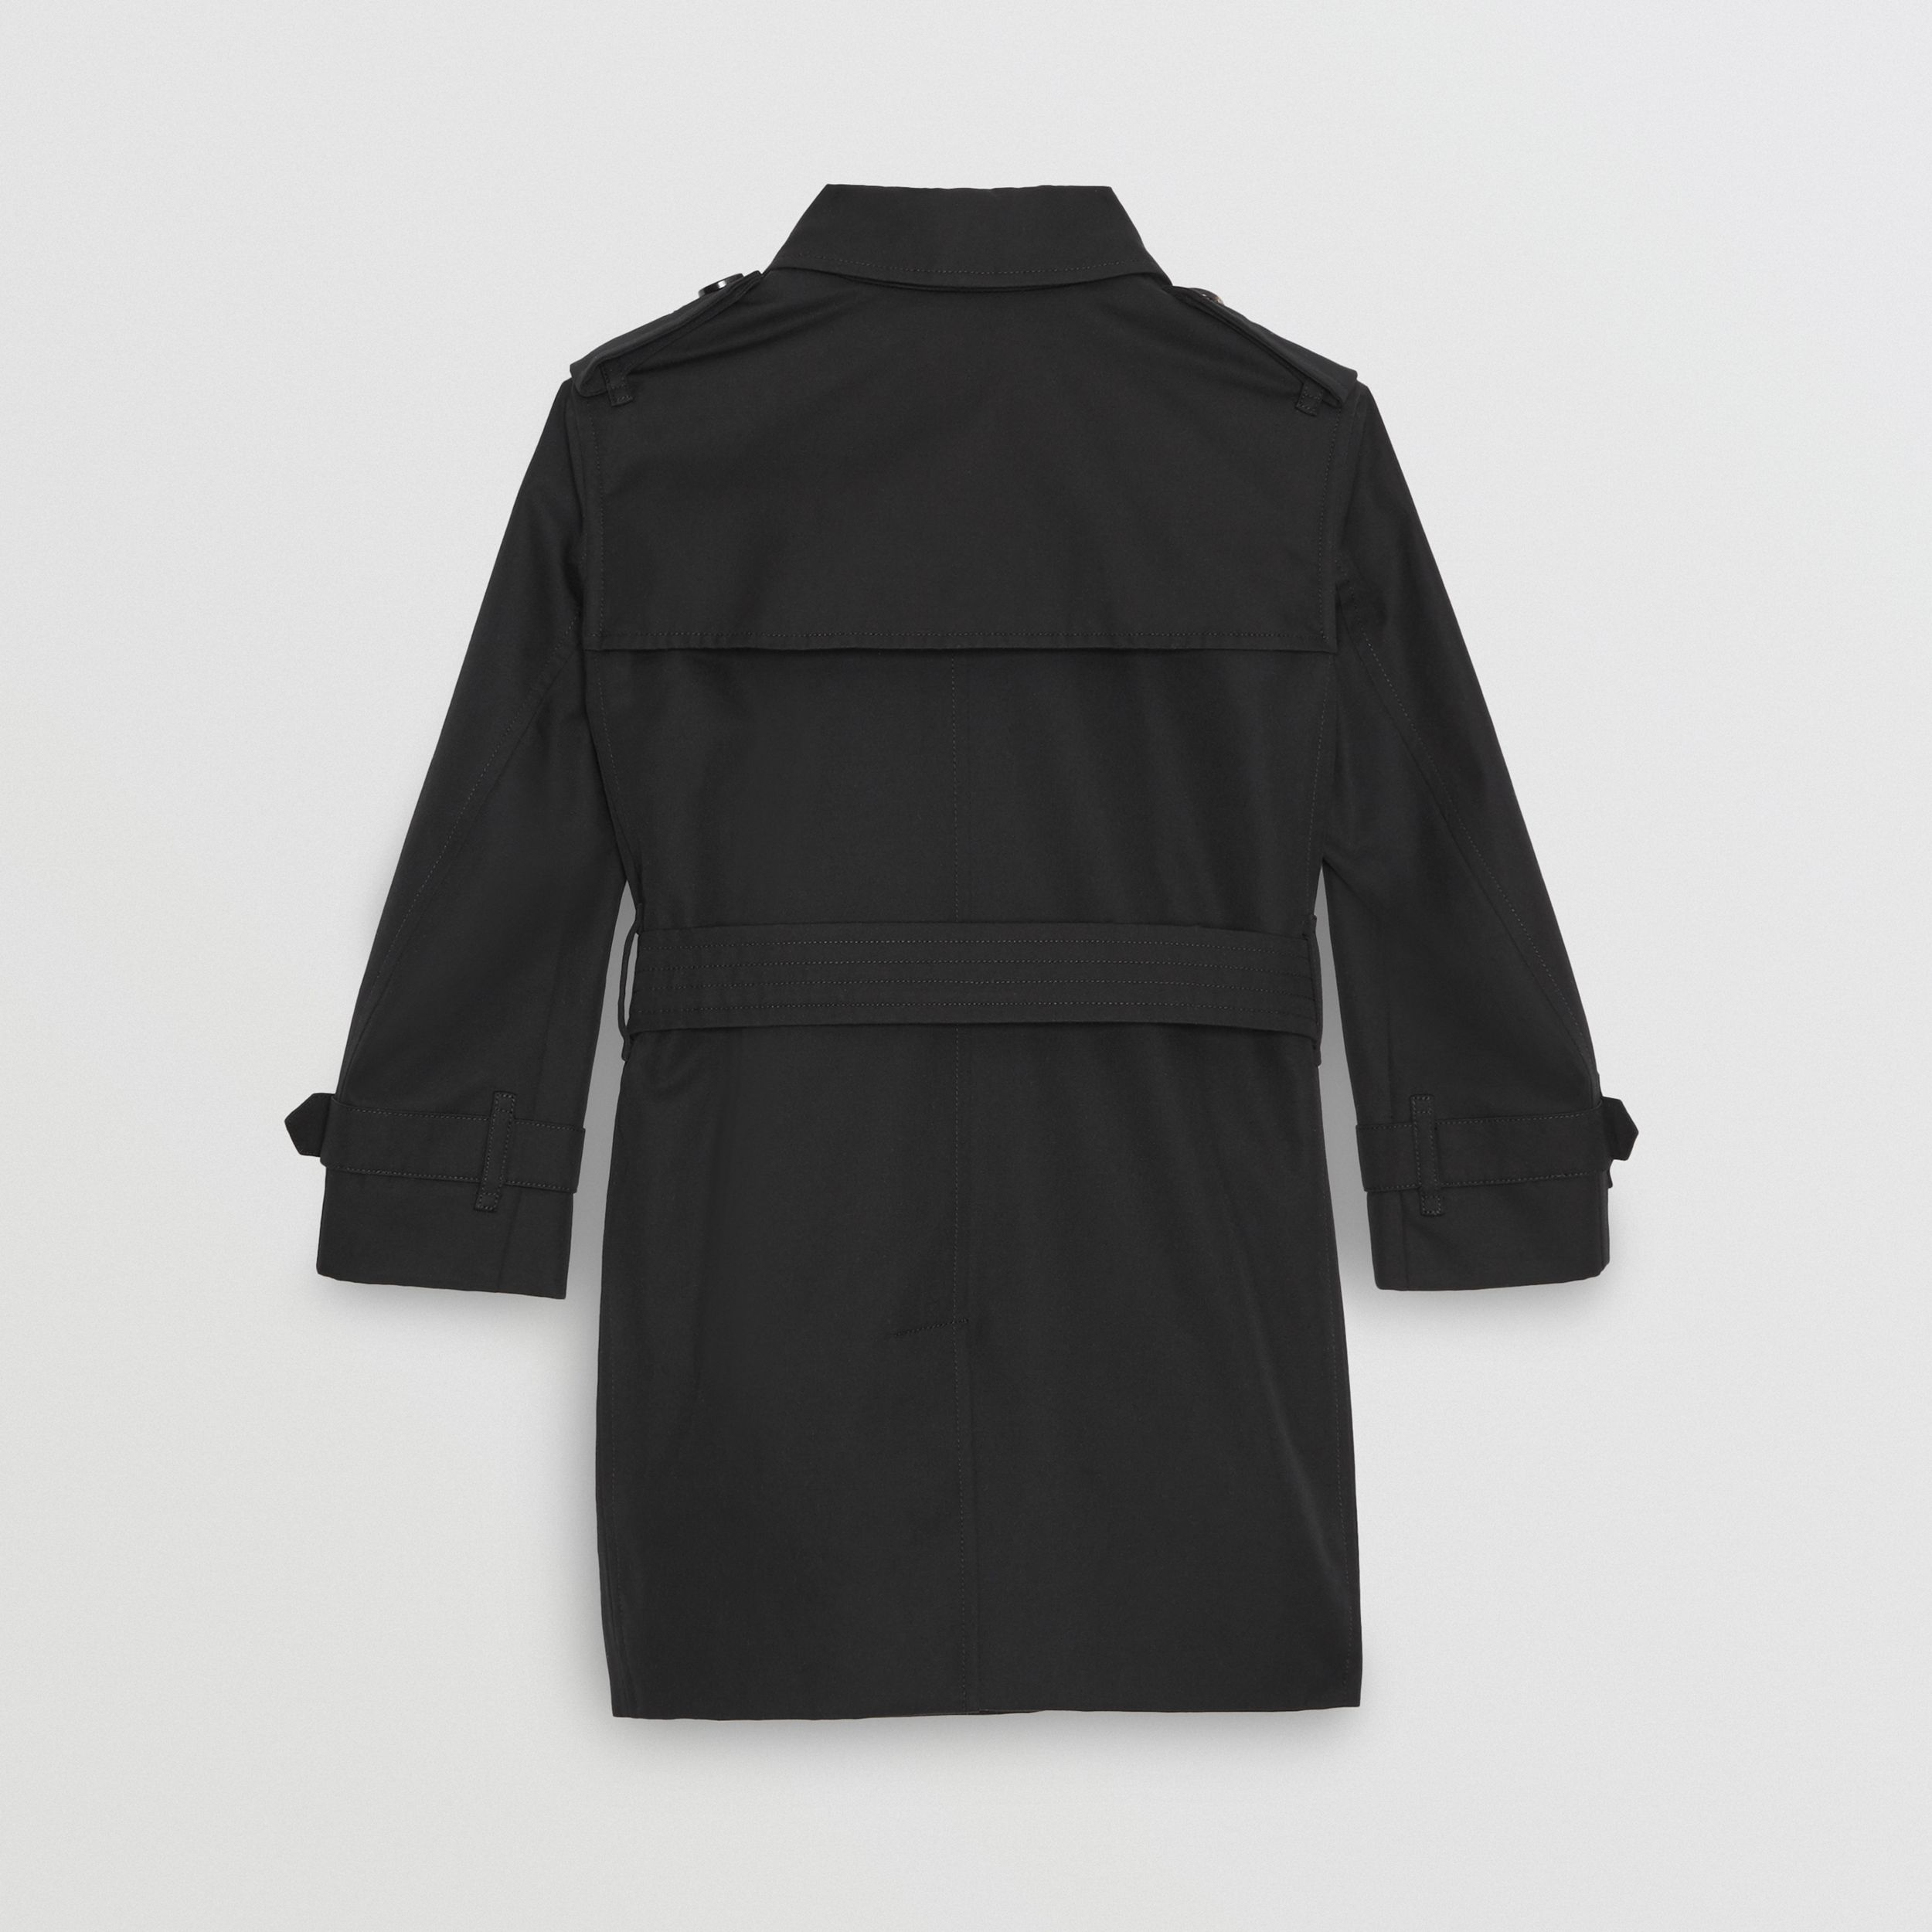 Cotton Gabardine Trench Coat in Black | Burberry - 3